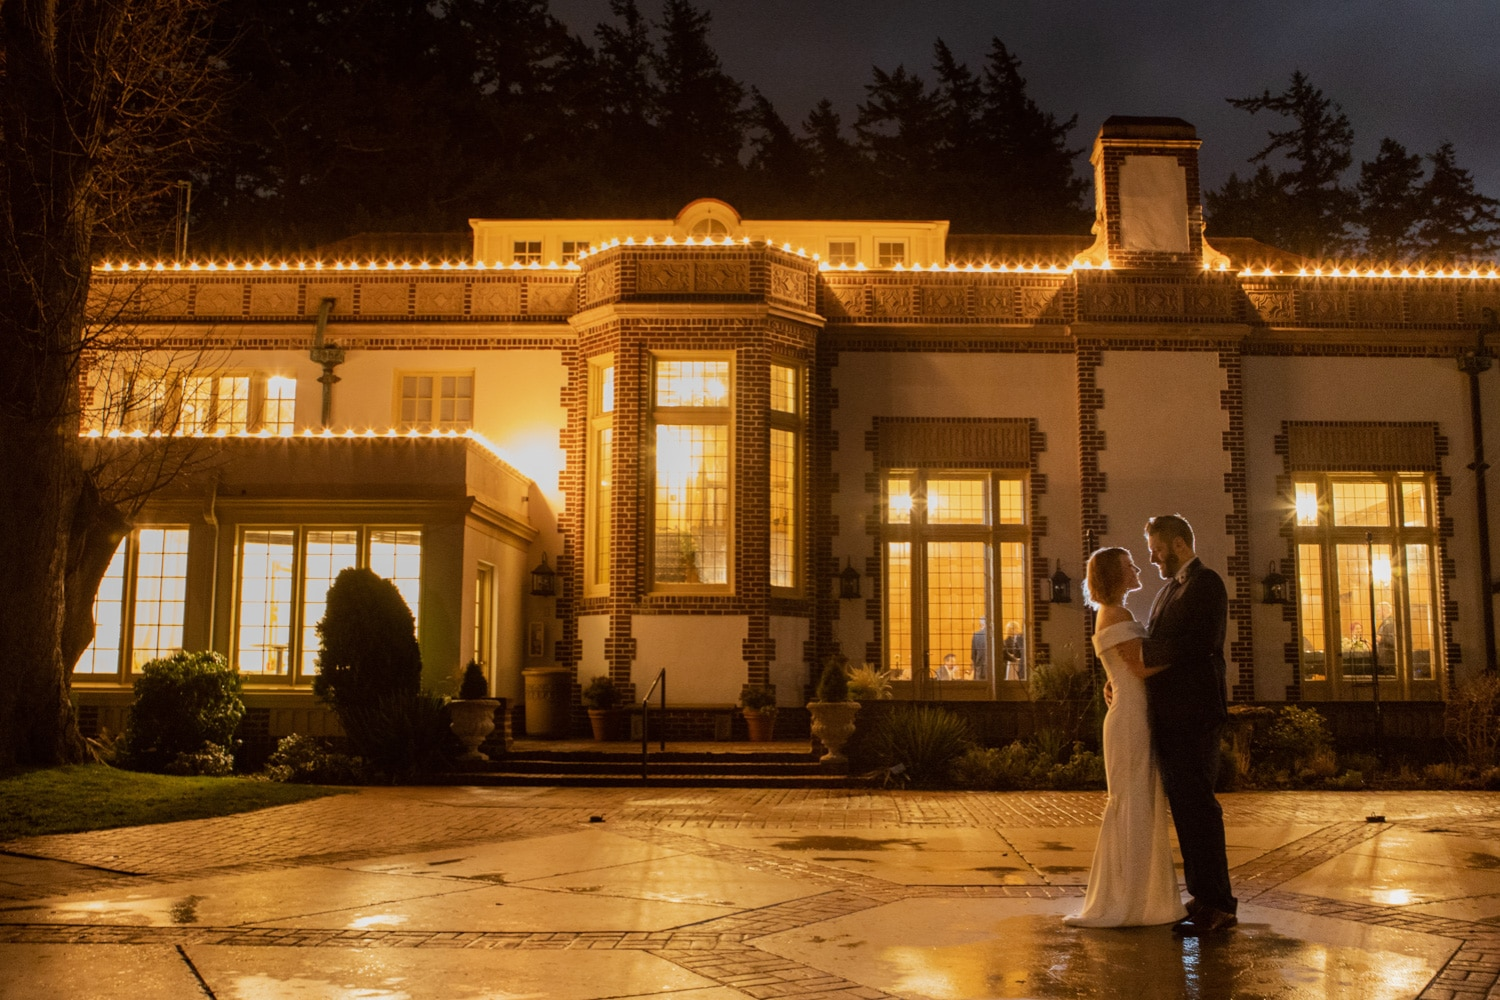 lairmont Manor bellingham wedding venue photo inspiration wedding photographer